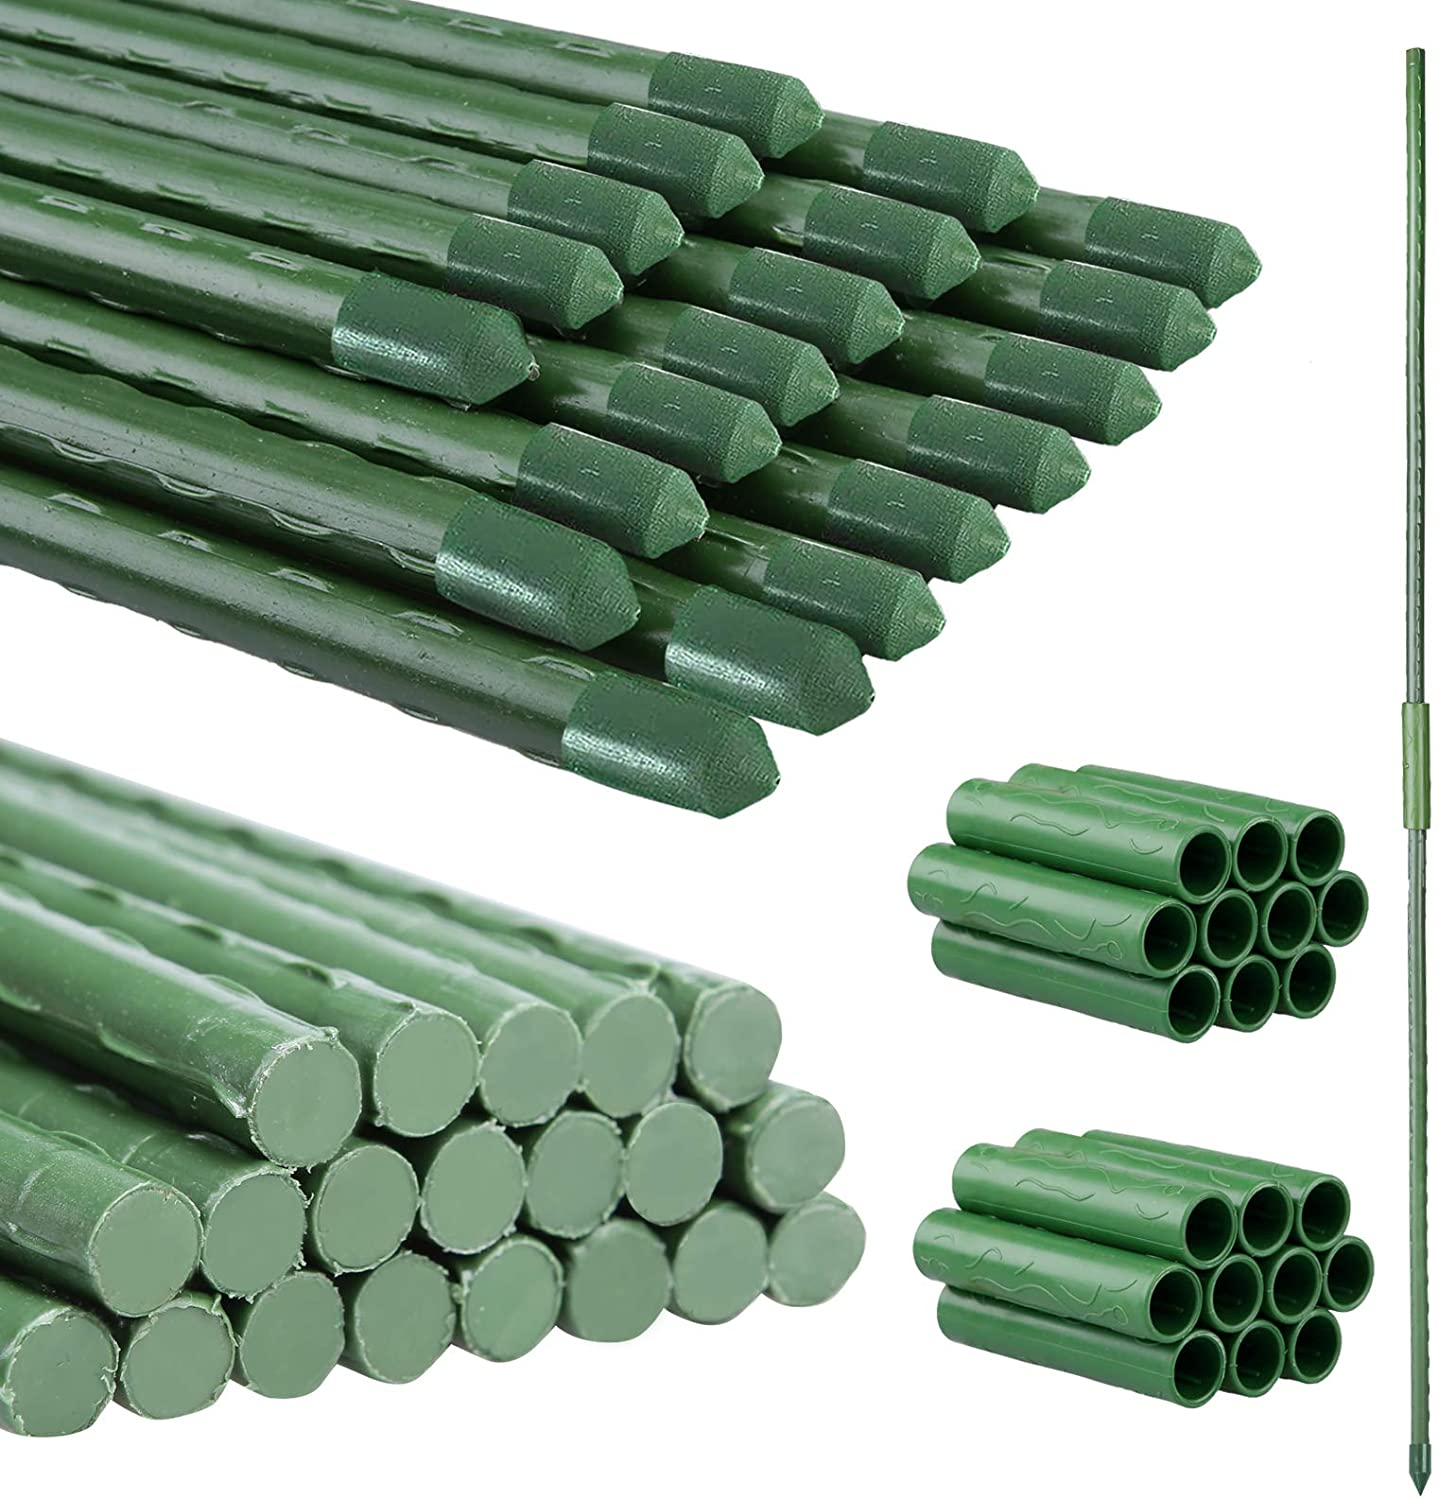 PUTING Garden Stakes with Connectors, 32 Inch 2.7ft Steel Plant Stakes with Plastic Coated for Tomato Support Cage, Pack of 20